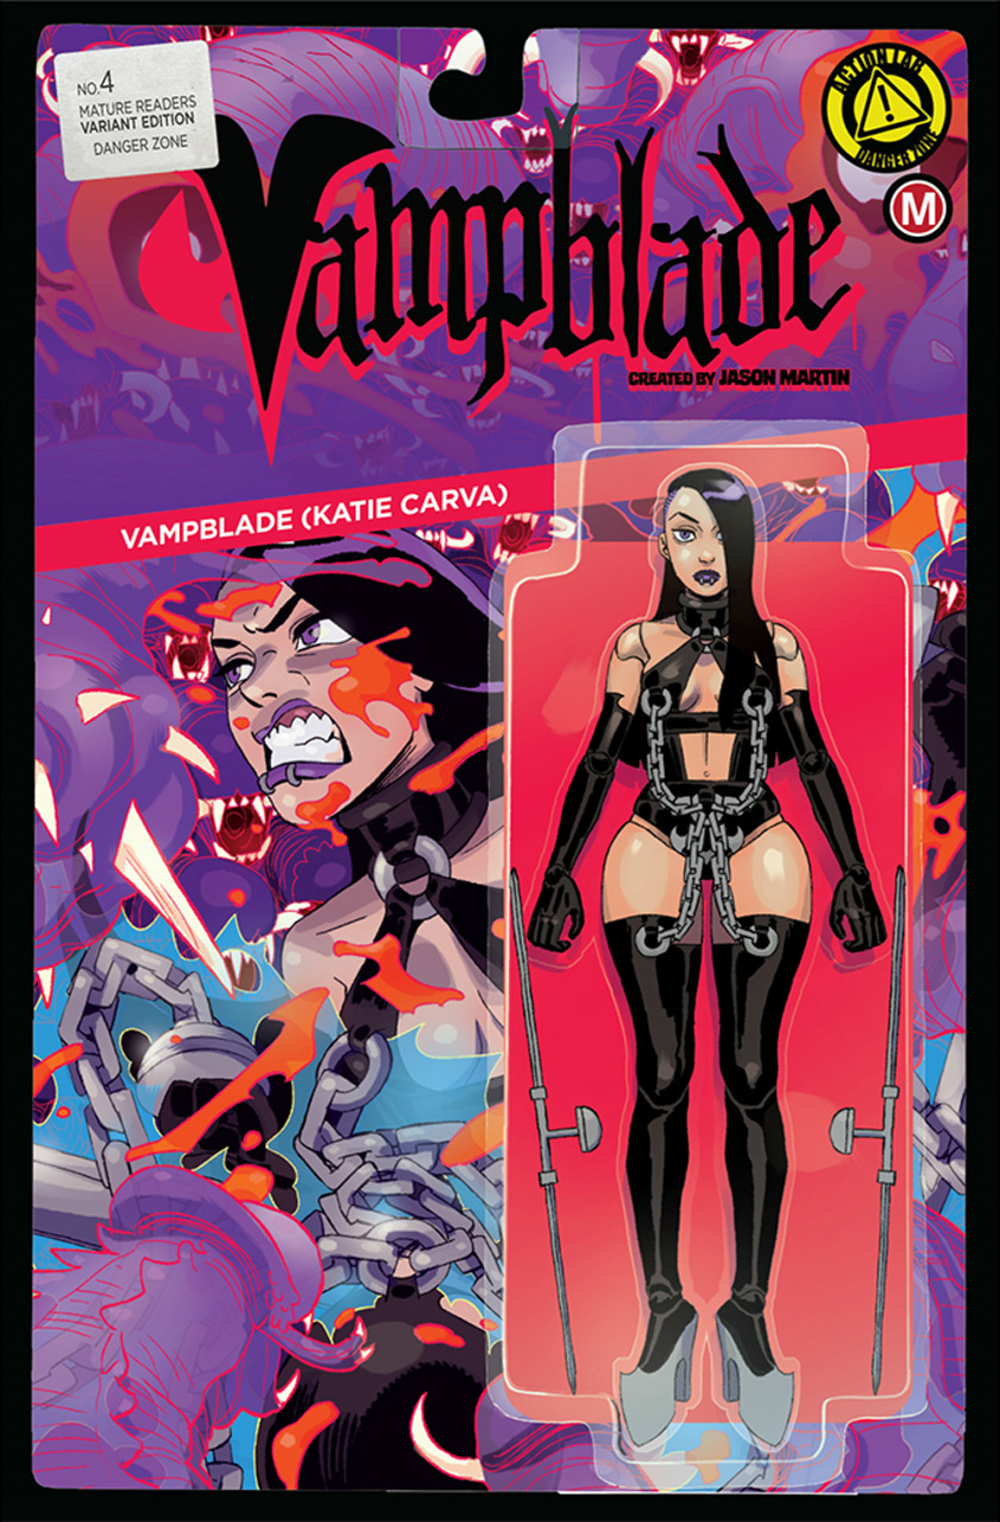 VAMPBLADE #4 CVR C ACTION FIGURE (MR)